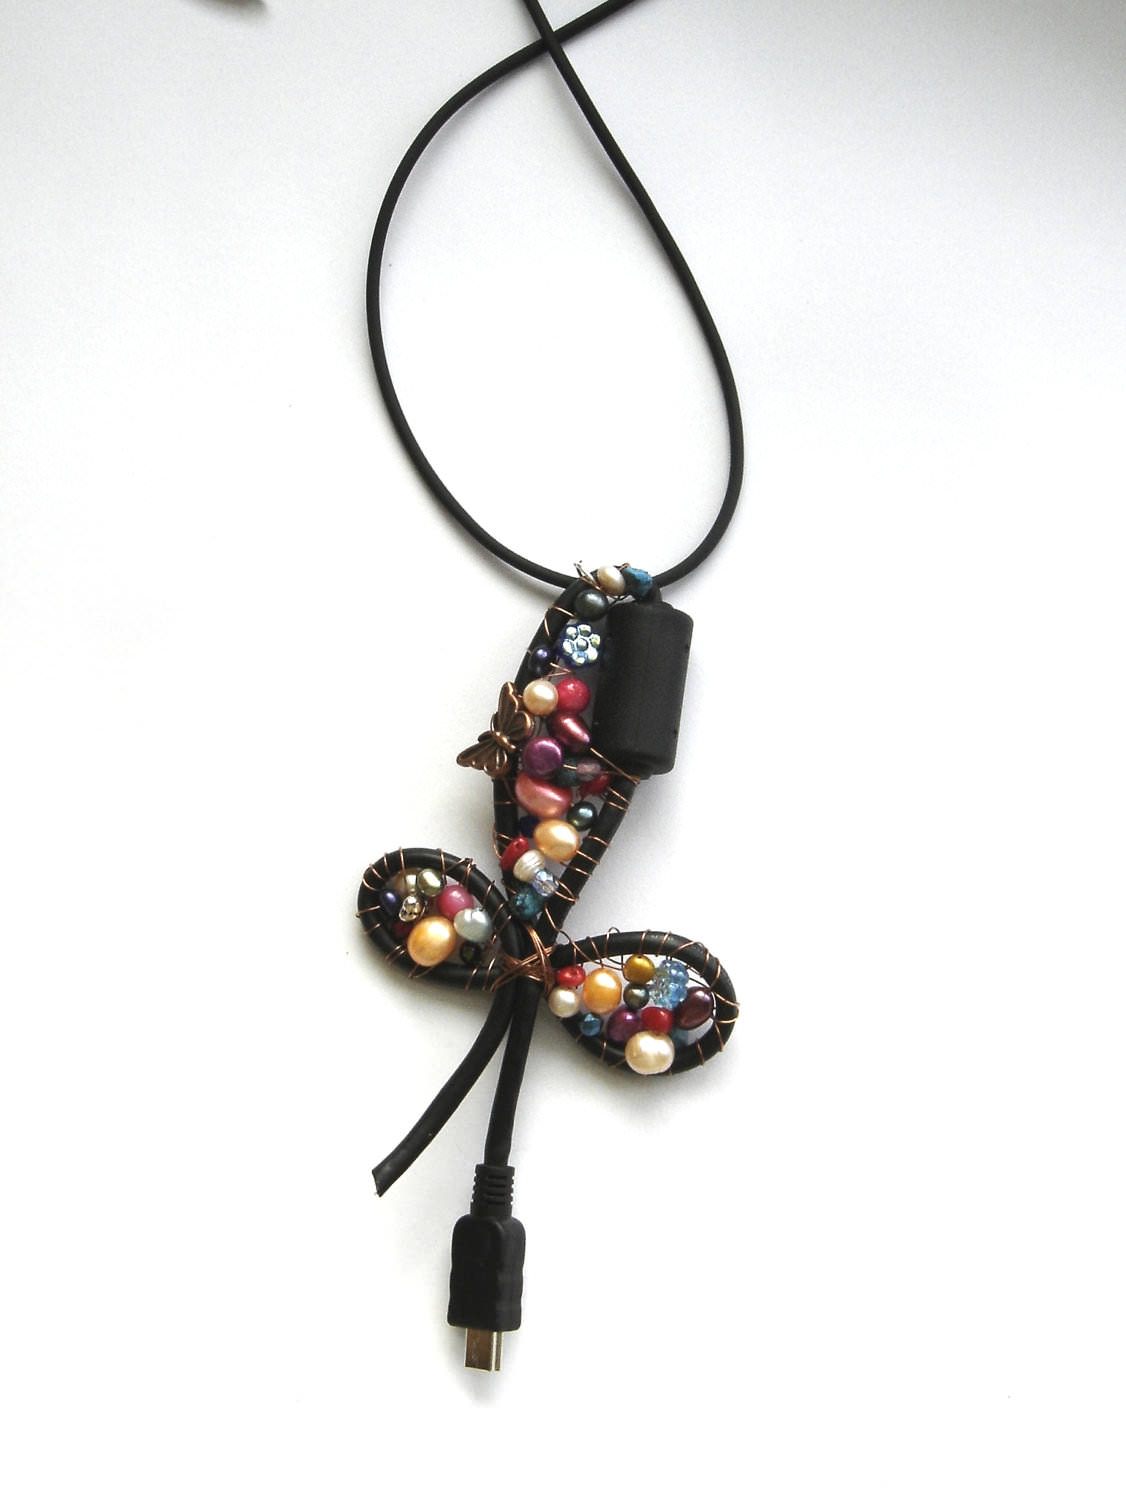 Creative USB Cable Necklace With Beads